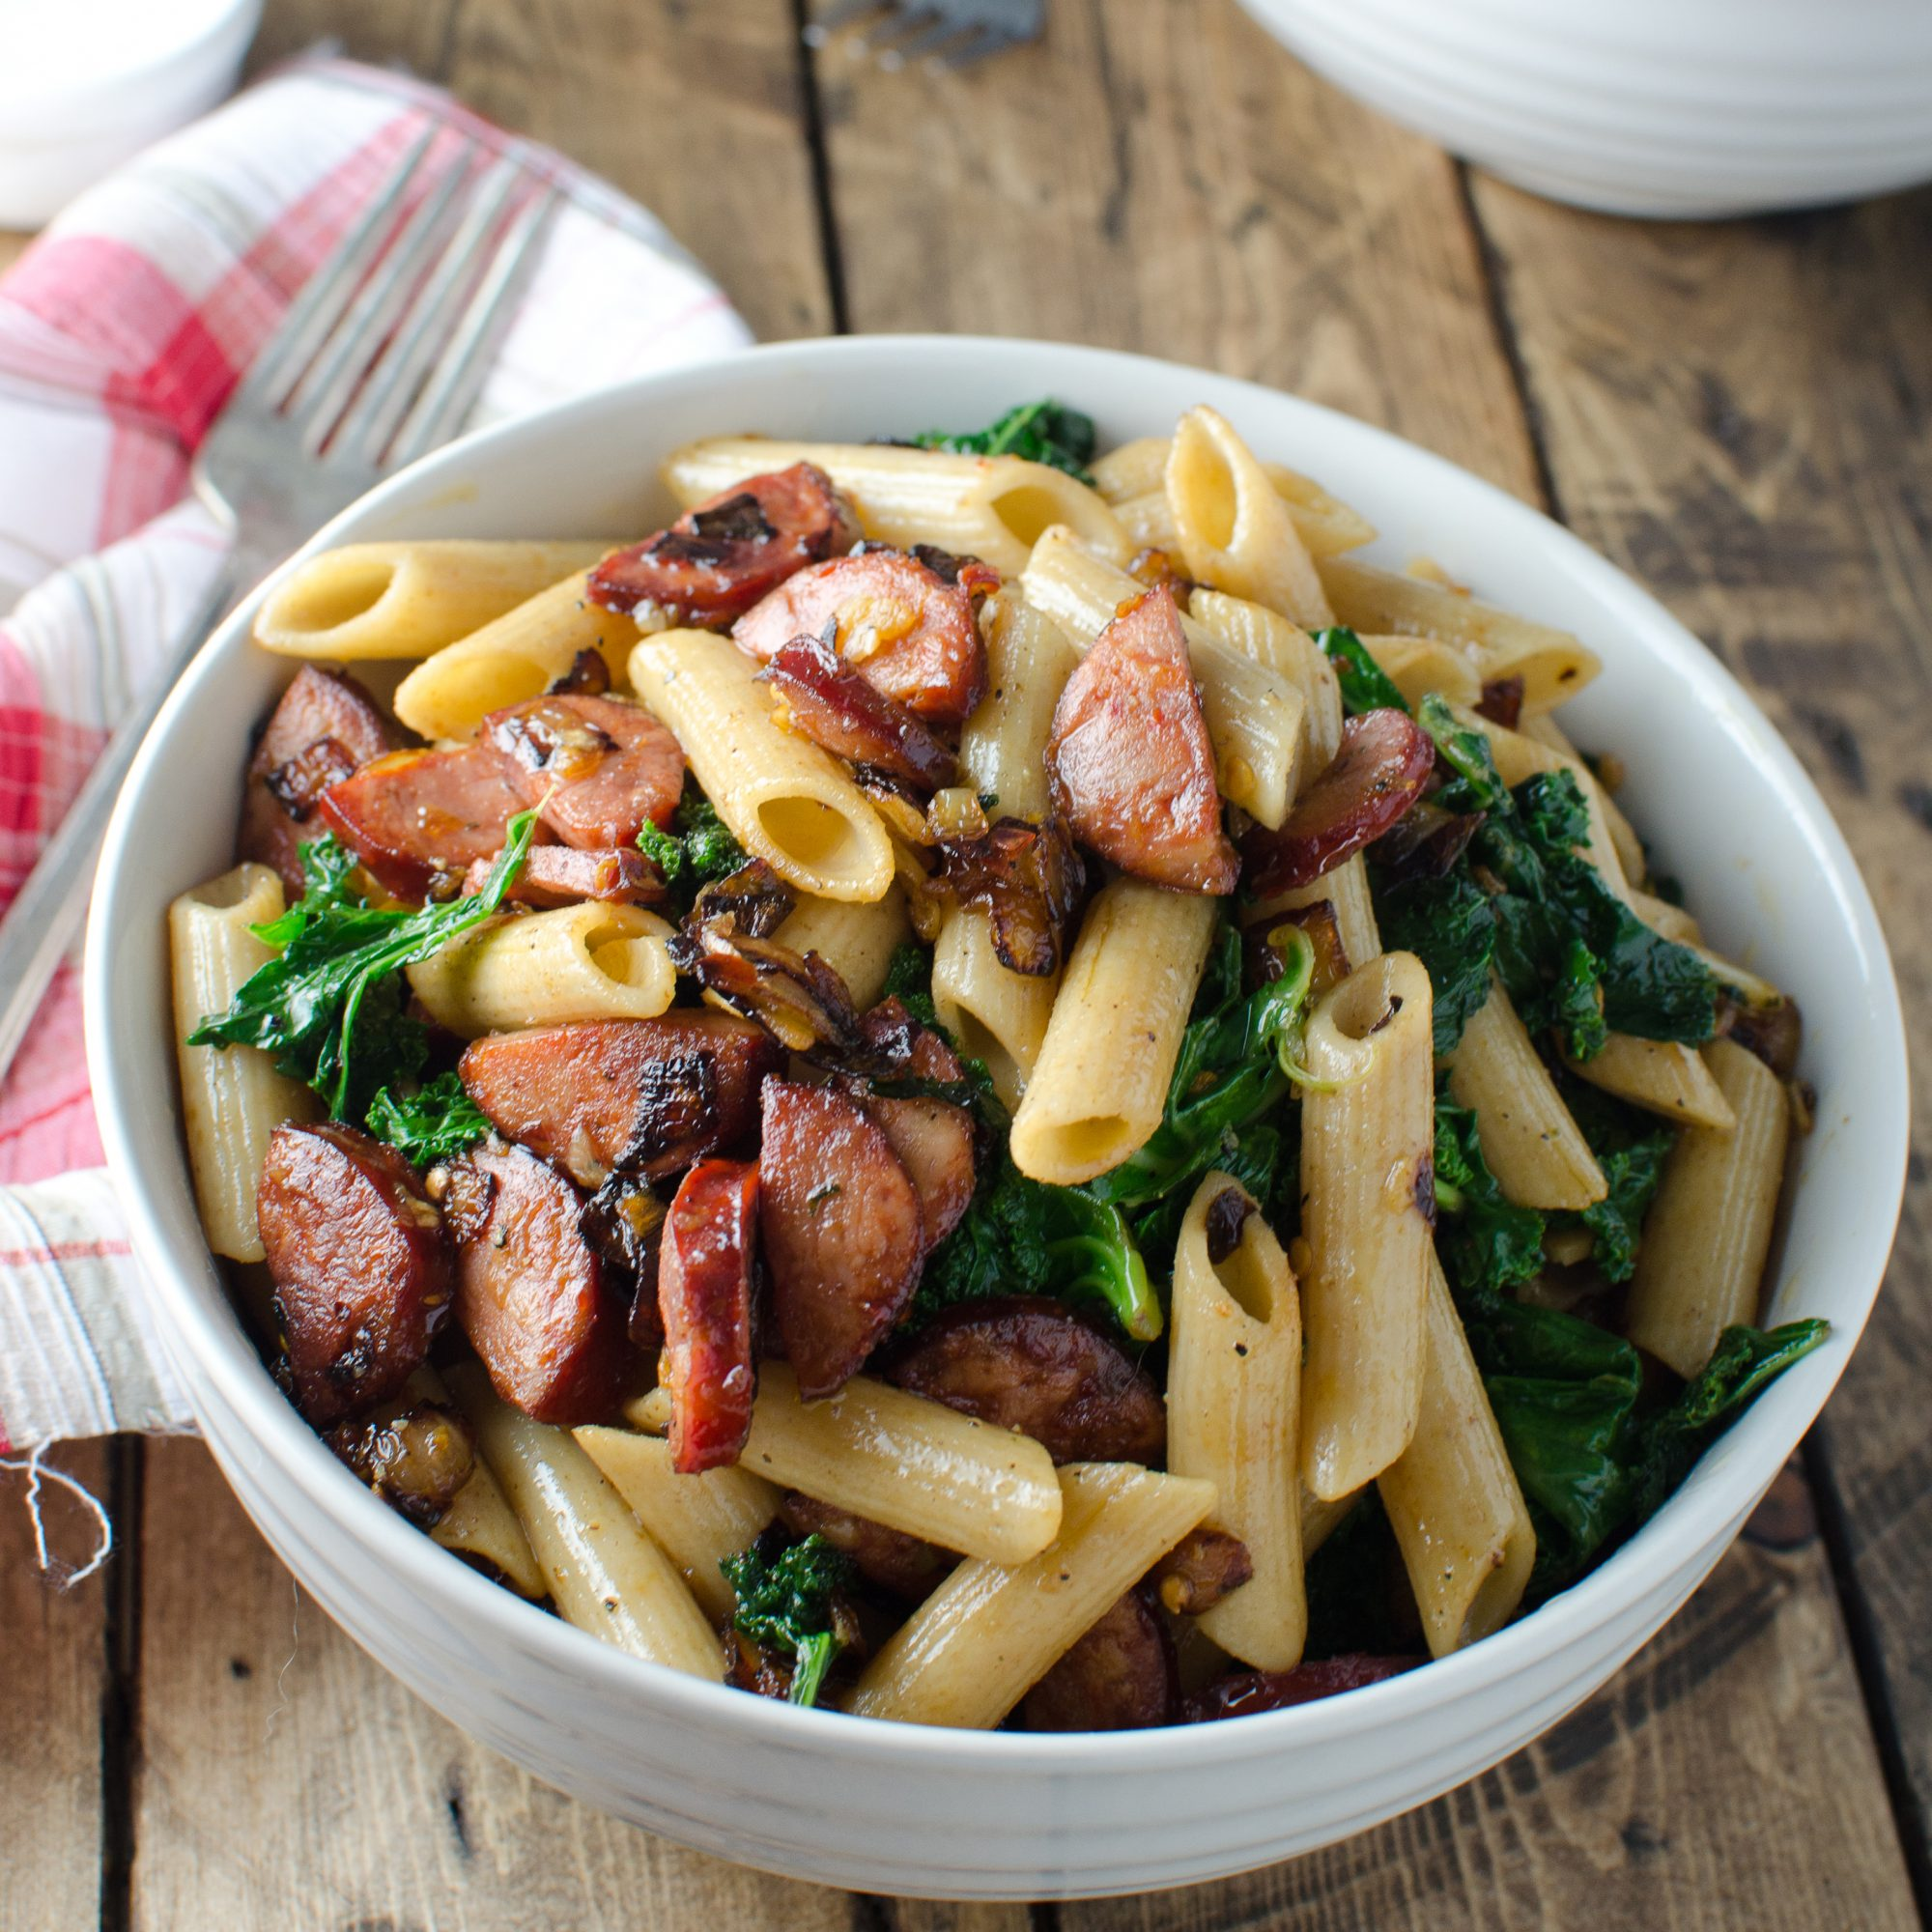 hd-201404-r-whole-wheat-pasta-with-spicy-chorizo-and-kale.jpg